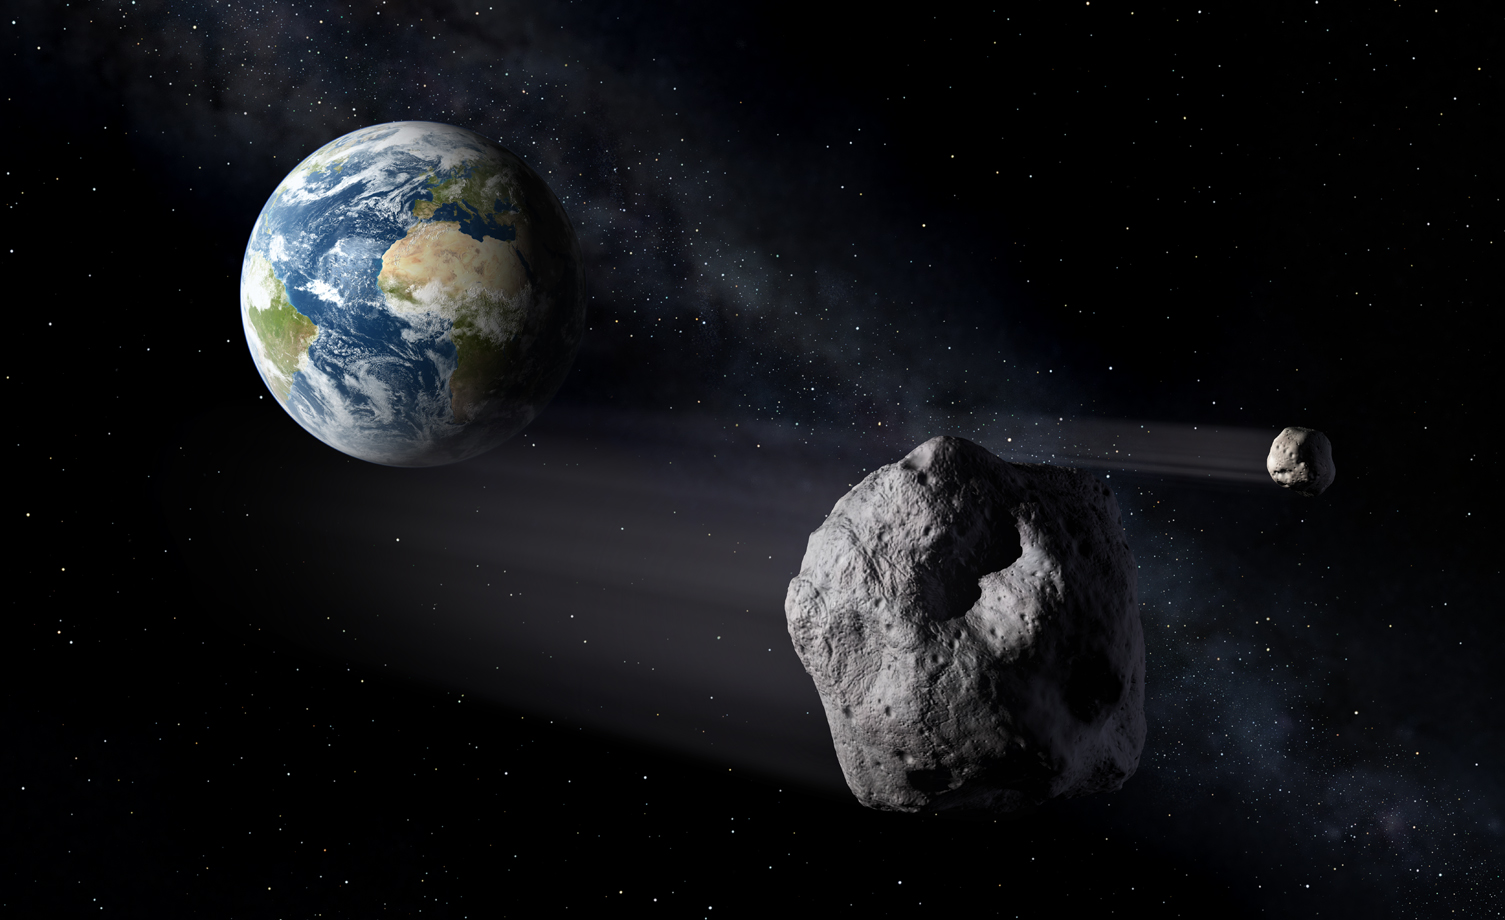 3-mile wide asteroid to pass near Earth tonight, may hit us in future